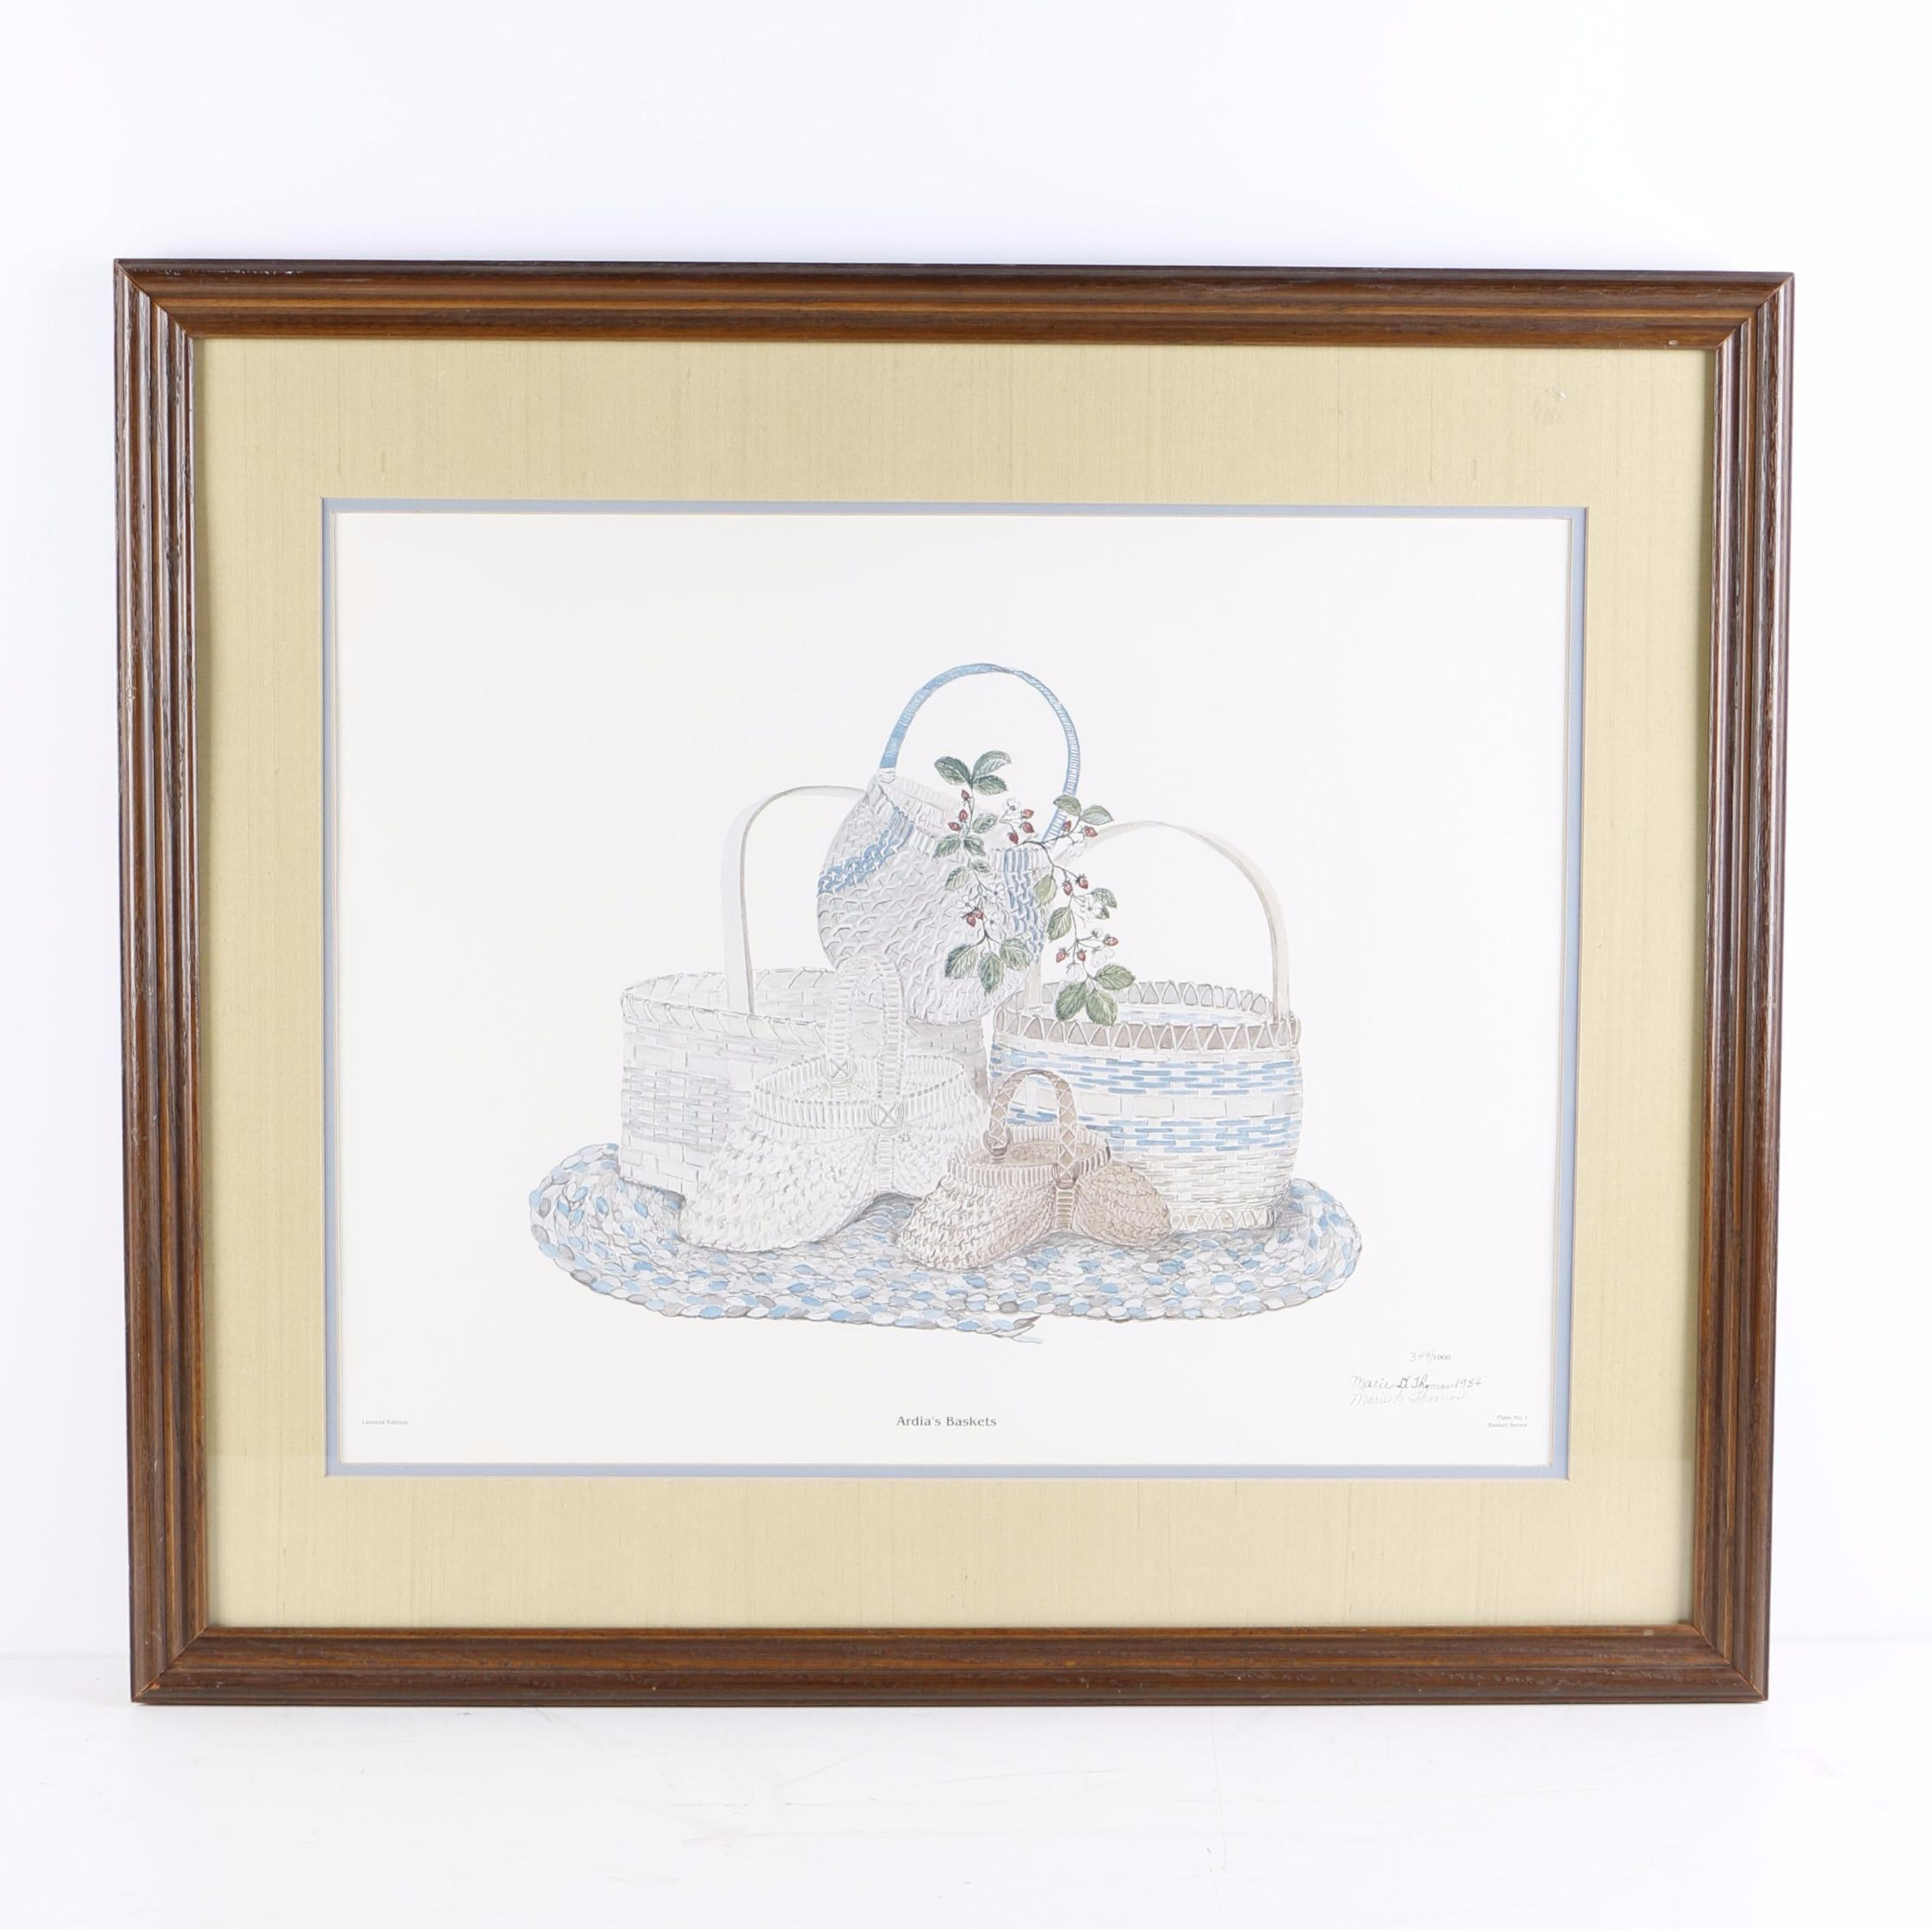 "Marie D. Thomas ""Ardia's Baskets"" Limited Edition Offset Lithograph on Paper"